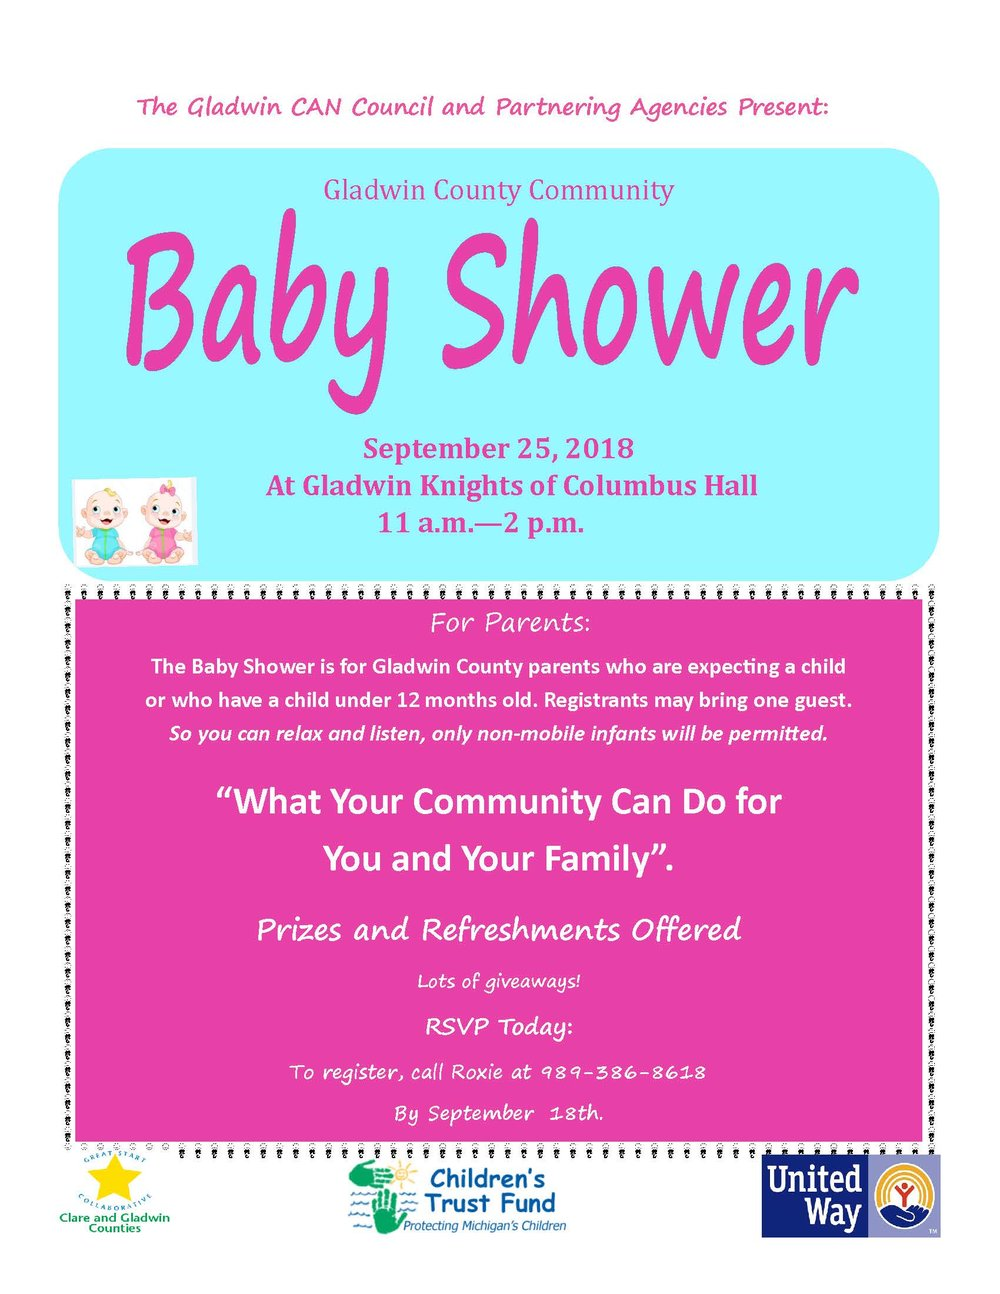 Can You Register For A Baby Shower Idea Gallery